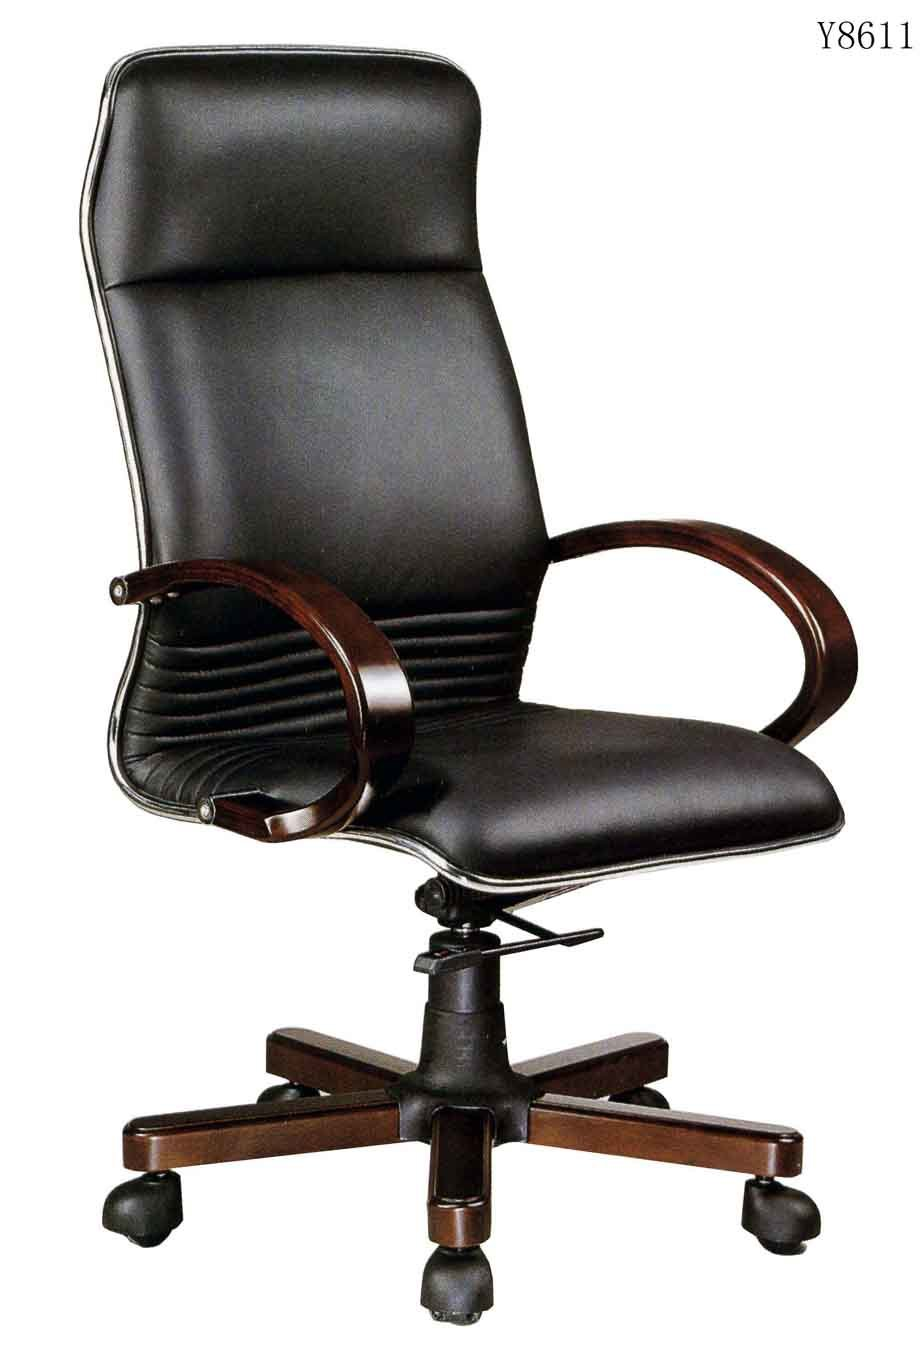 Modern cafe furniture 1349955033 97520800 jpg - Filename High Back Fabric Swivel Office Furniture Office Chair Model Y8611 Jpg